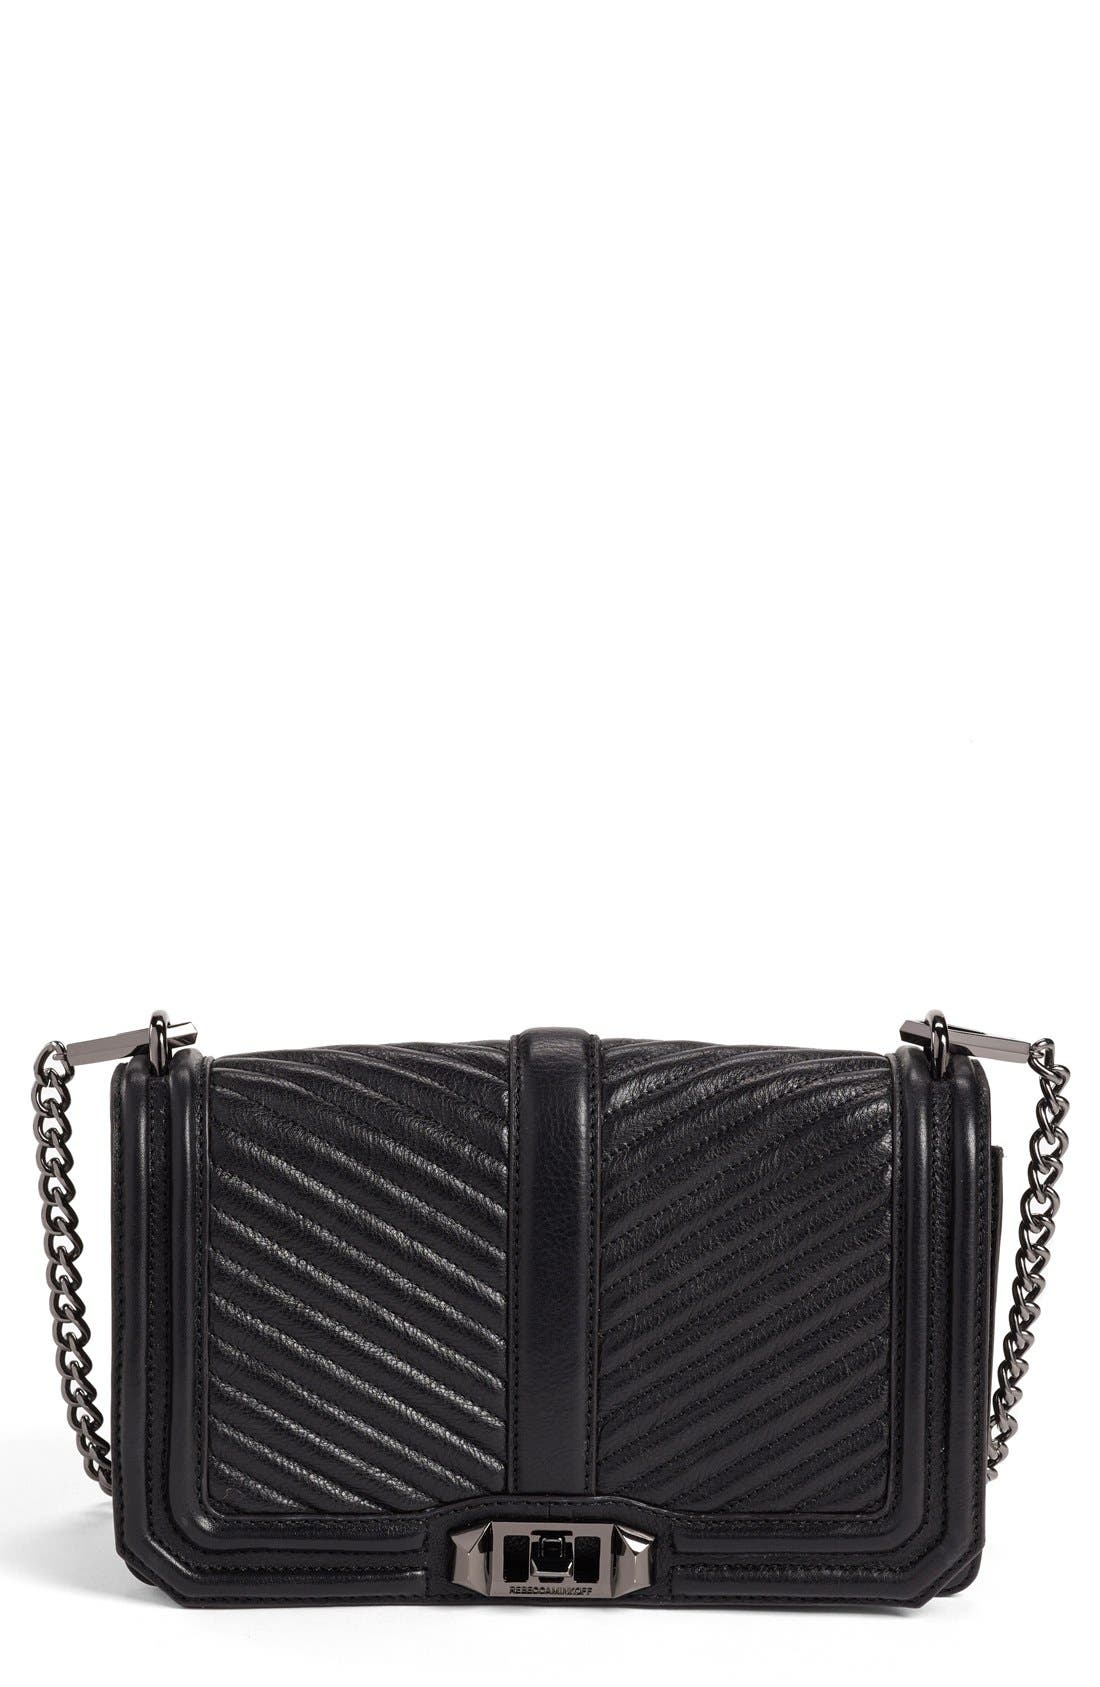 'Chevron Quilted Love' Crossbody Bag,                             Main thumbnail 1, color,                             001